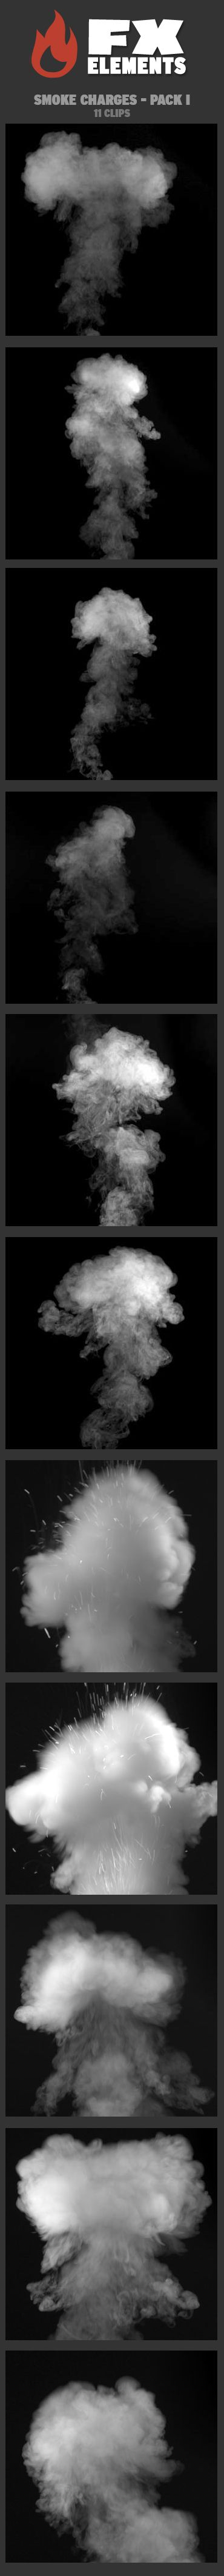 Smoke Charges - Pack I includes 11 FX clips. Smoke charges work well for smoke releases, or for explosions, especially when paired with pyro charges. They can also be easily inverted for black smoke. • All clips delivered with a separate corresponding alpha file • 5 clips horizontal 2K resolution (2048 x 1152) • 6 clips vertical 2K resolution (1152 x 2048)   $49   #VFX #FxElements